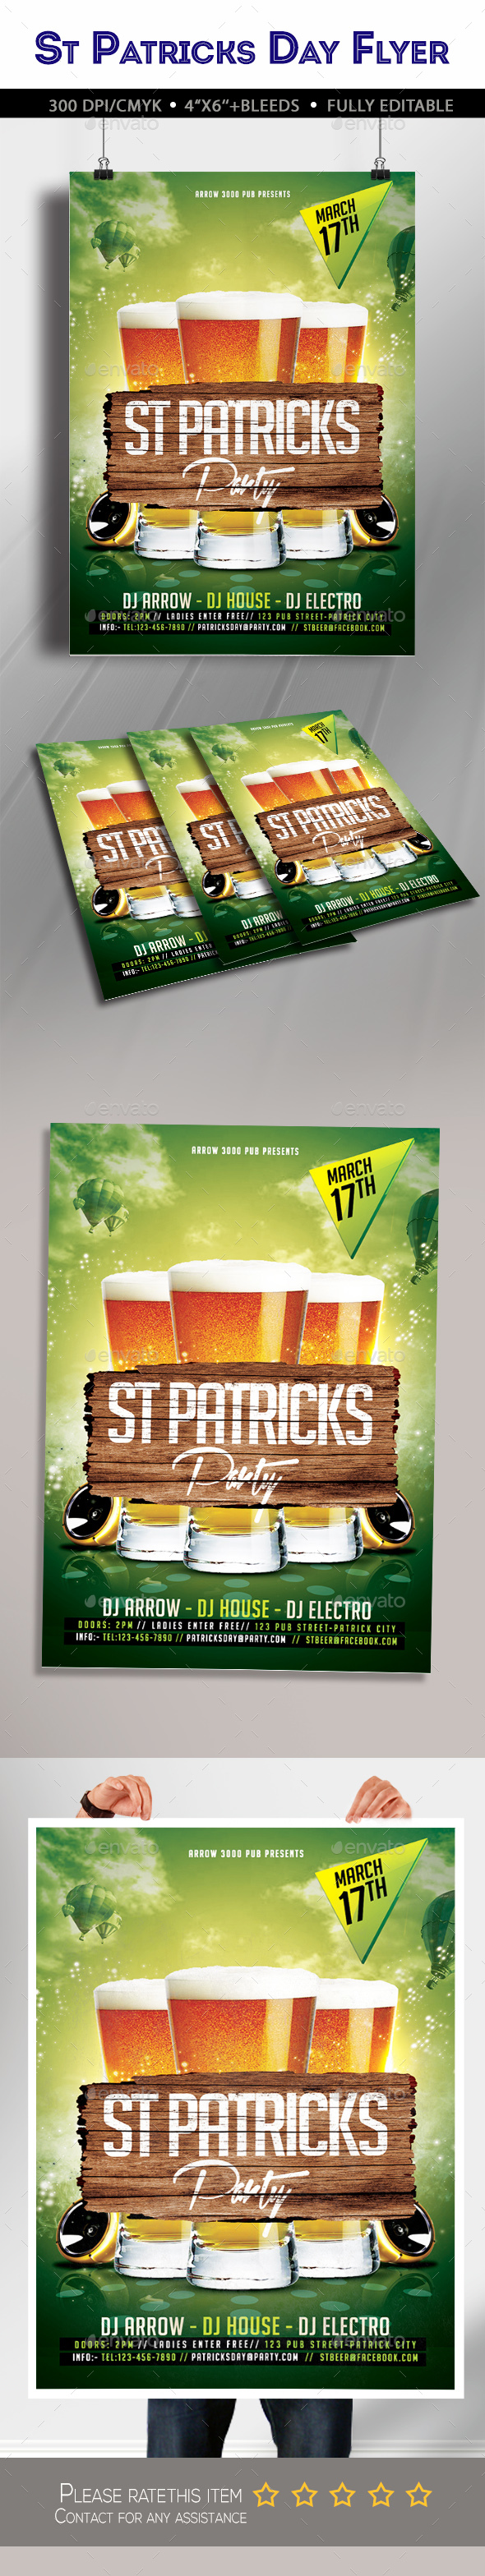 St Patricks Party Flyer - Clubs & Parties Events